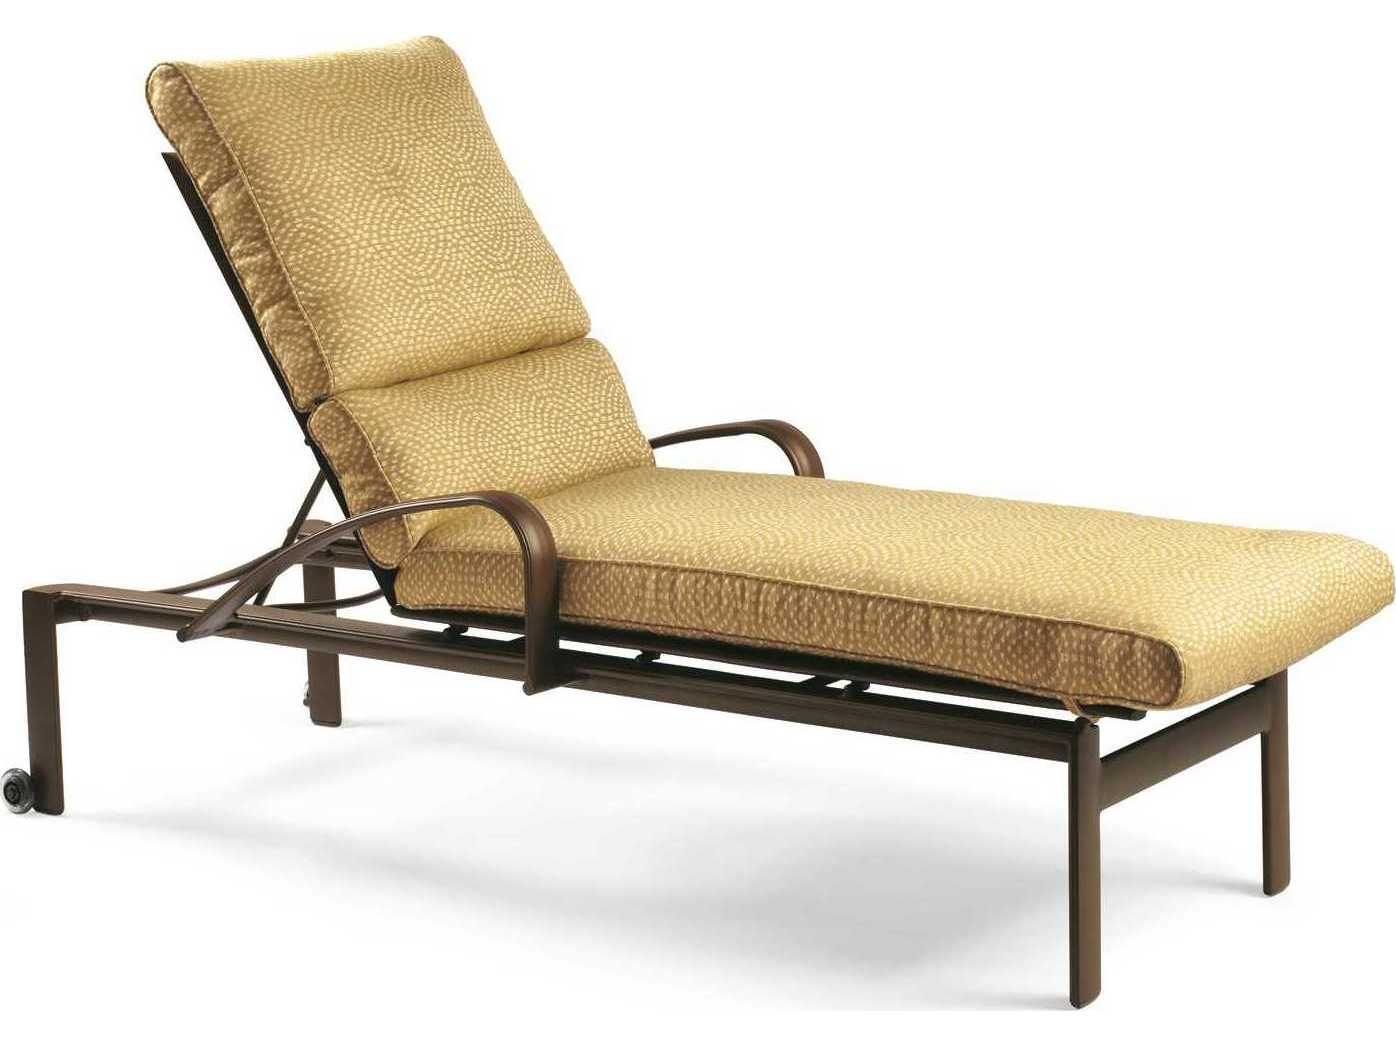 metal lounge chair with wheels linen slipcovered dining chairs winston belvedere cushion aluminum chaise